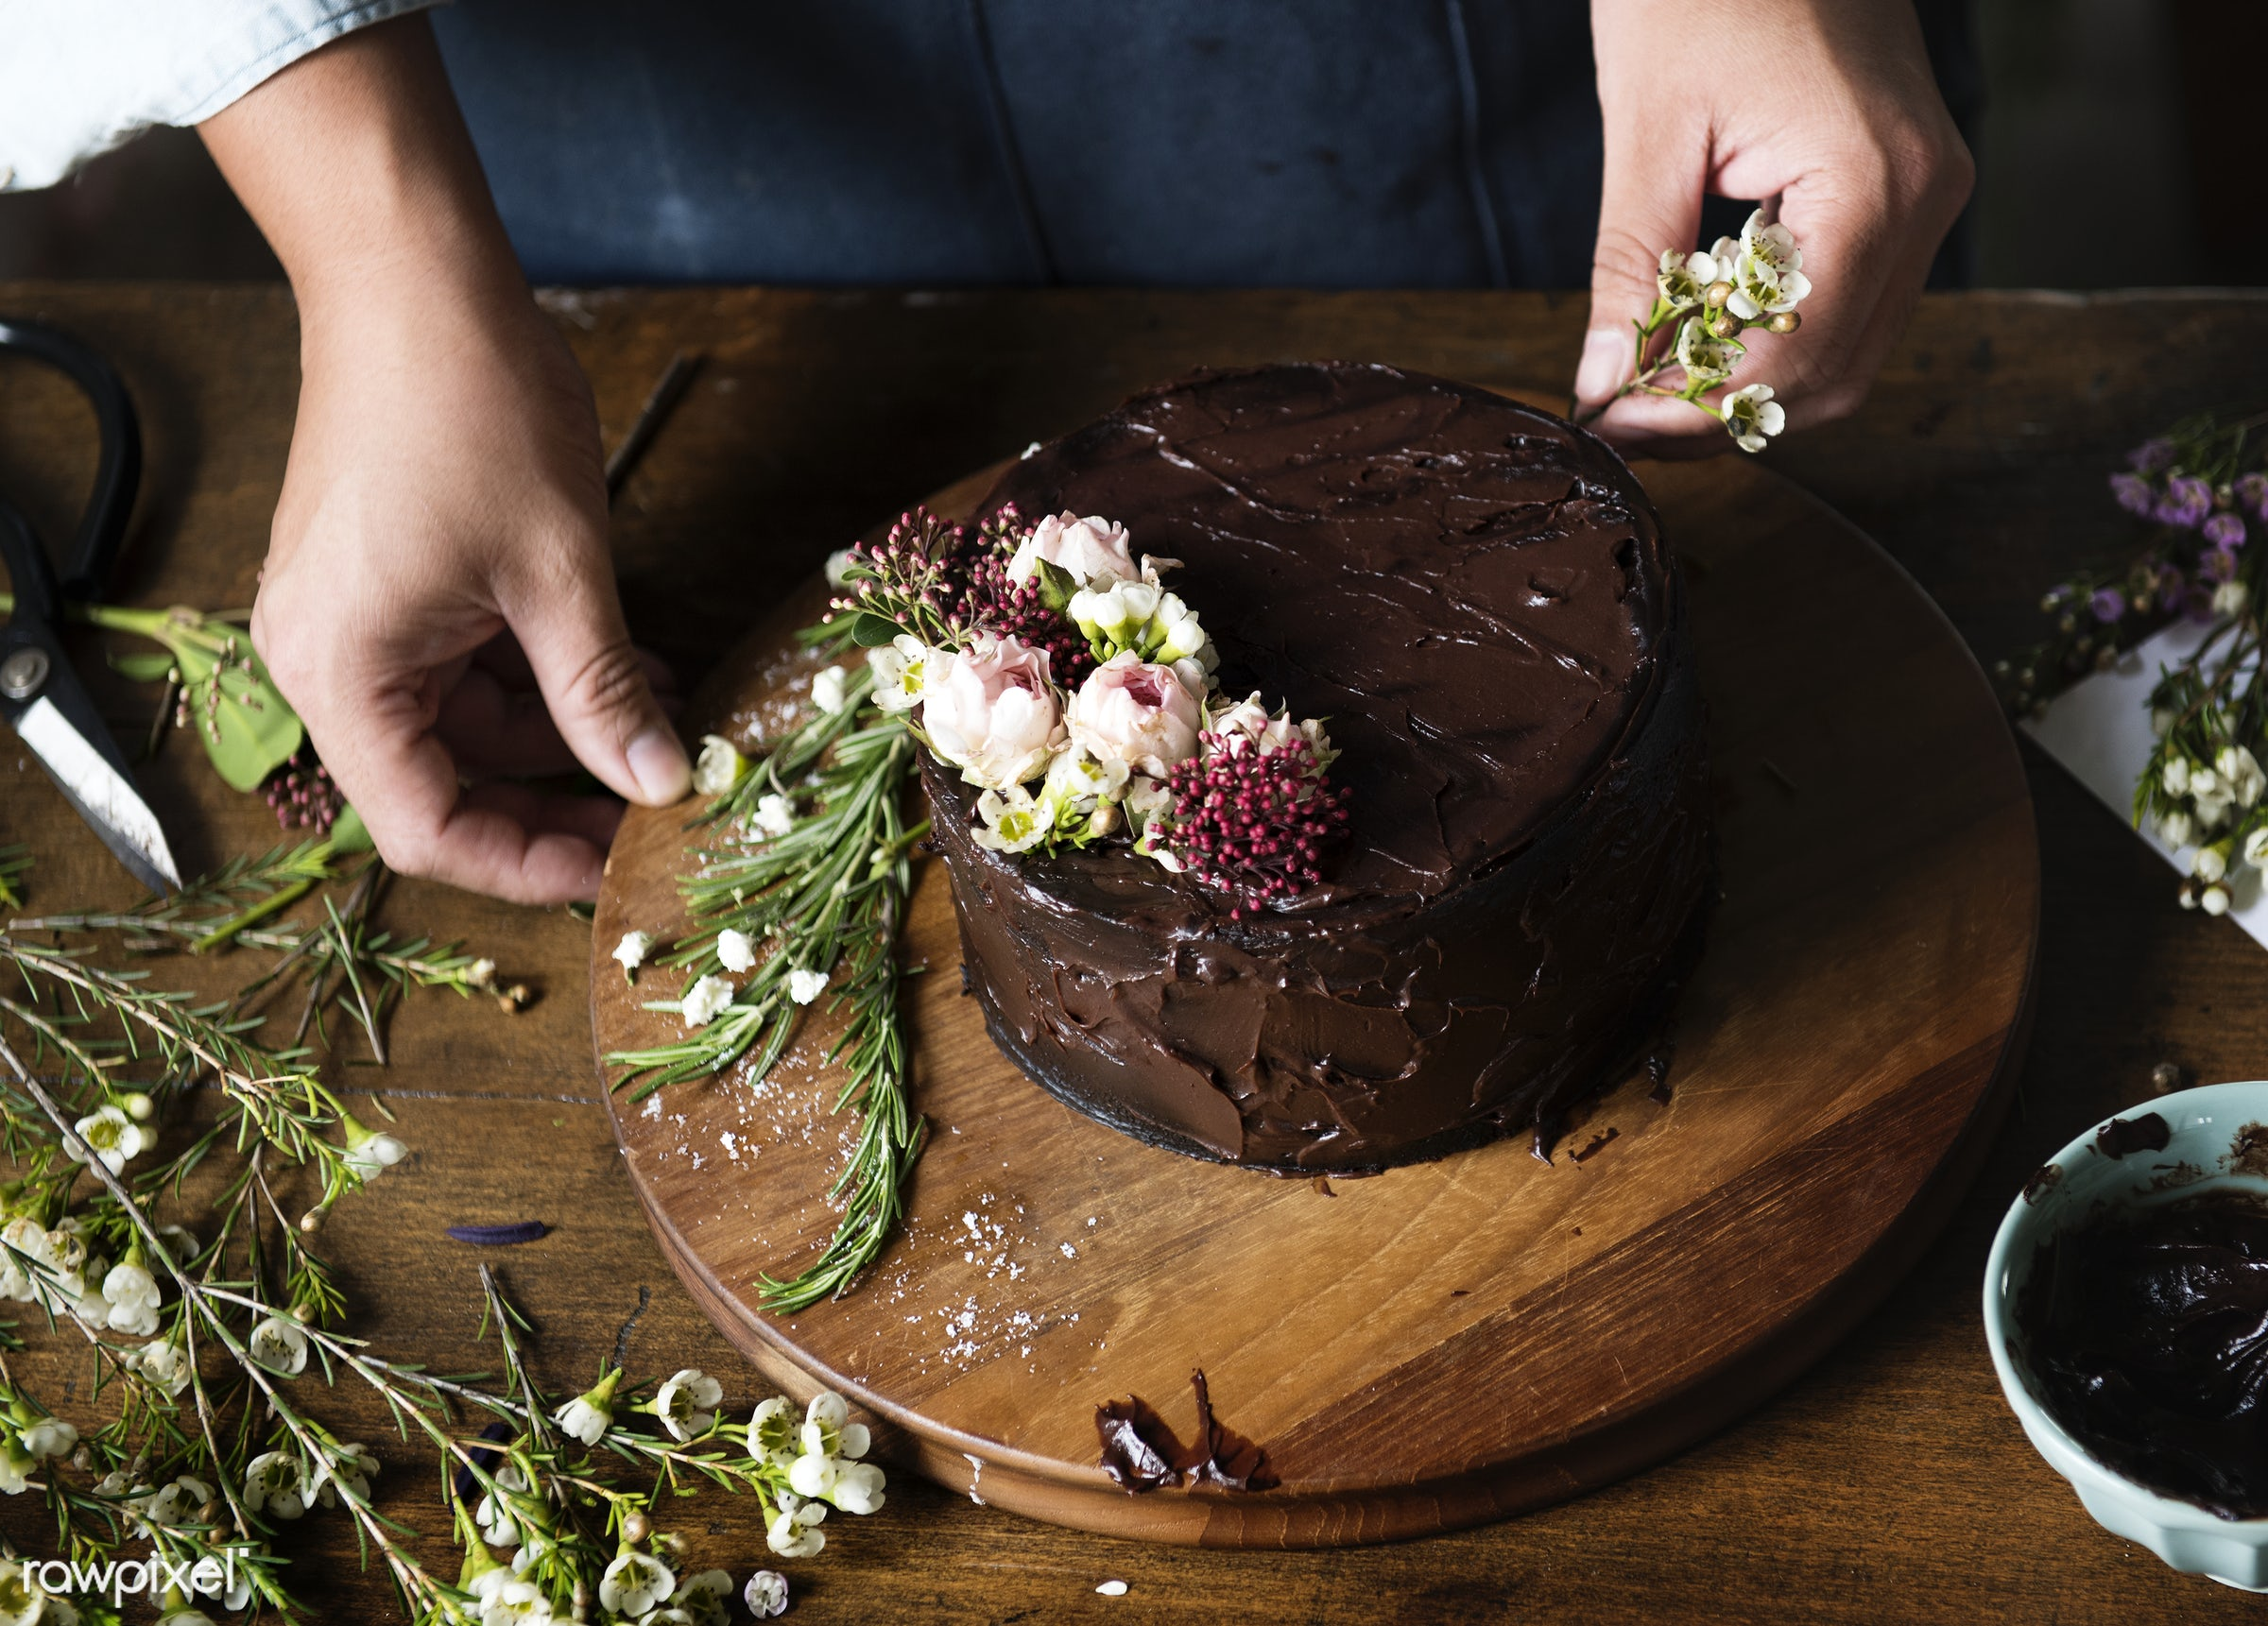 Baker Man Decorating Chocolate Cake with Flowers - decoration, cake, chocolate, bakery, patisserie, sweet, dessert, flowers...